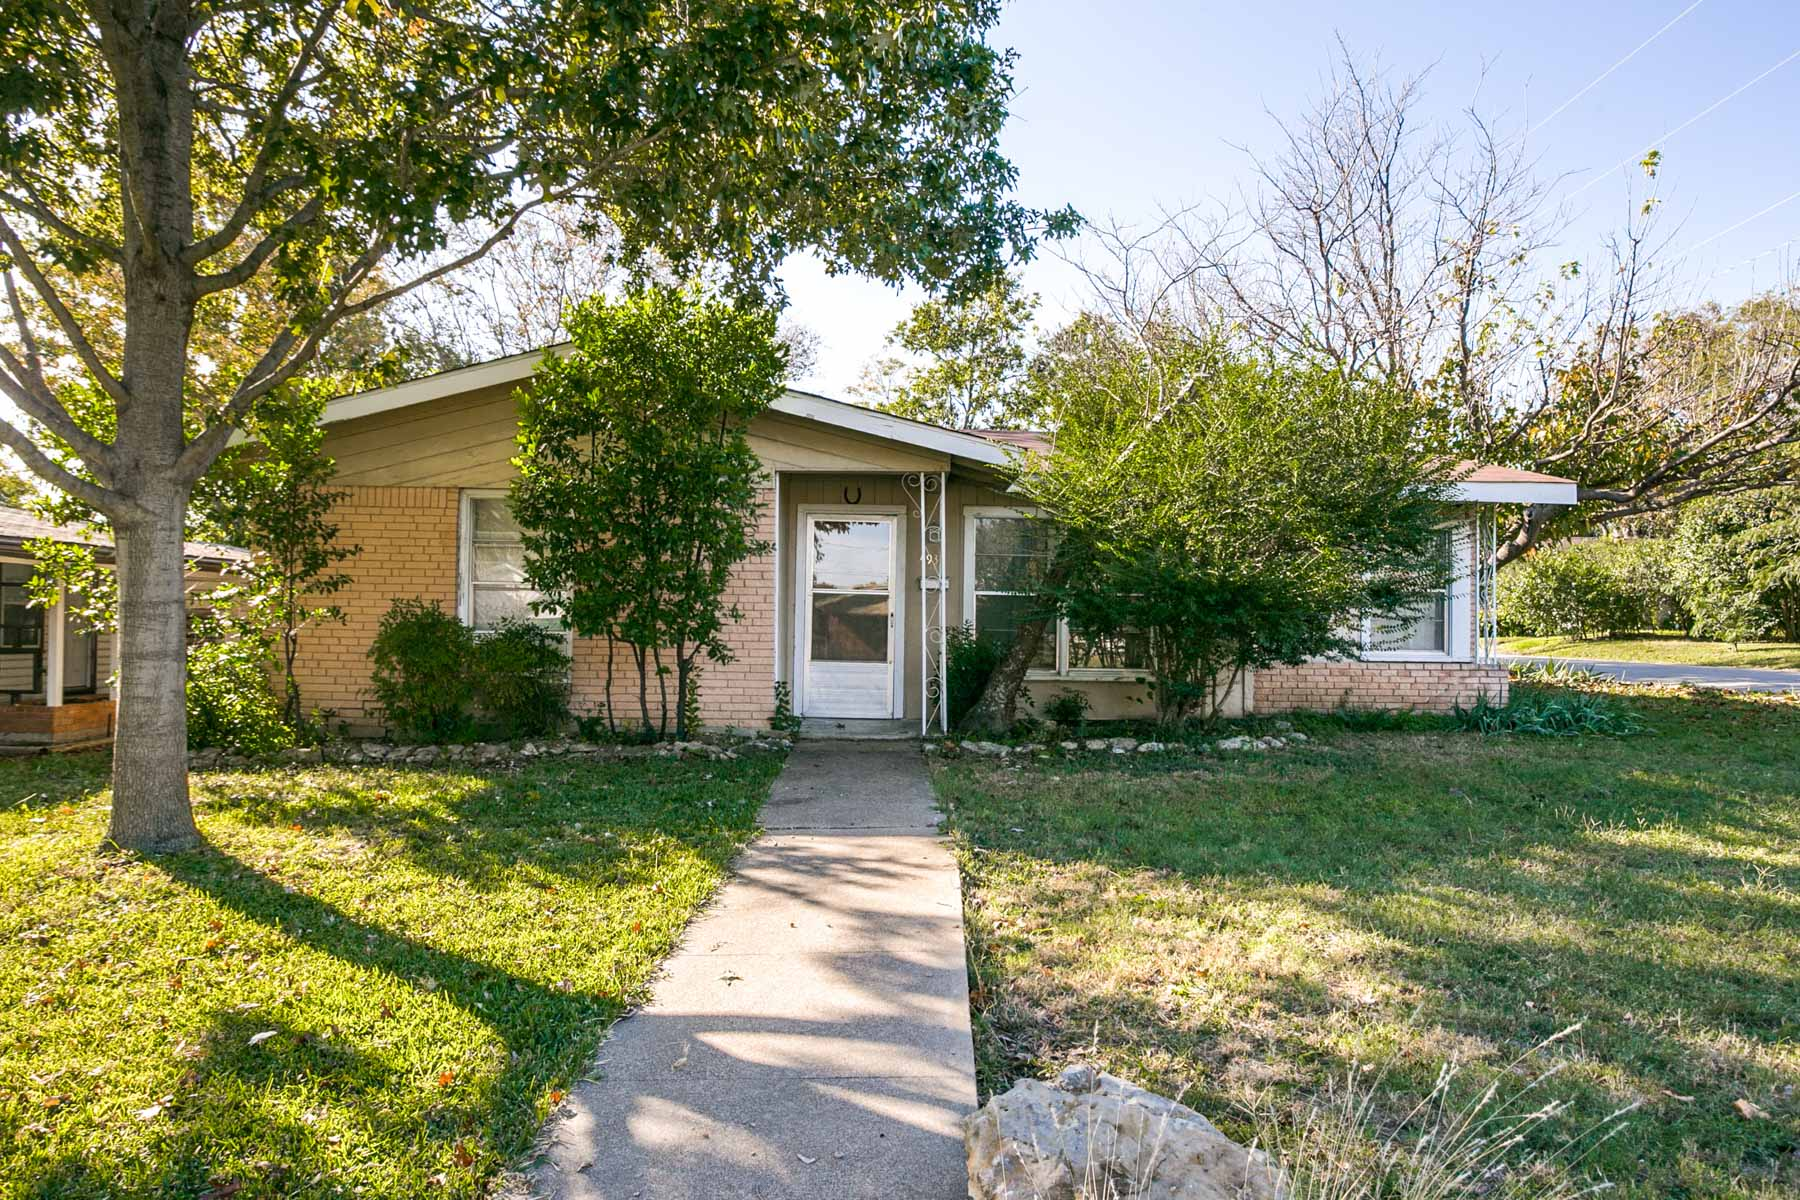 Moradia para Venda às Traditional Home in Central Fort Worth 4937 Locke Ave Fort Worth, Texas, 76107 Estados Unidos